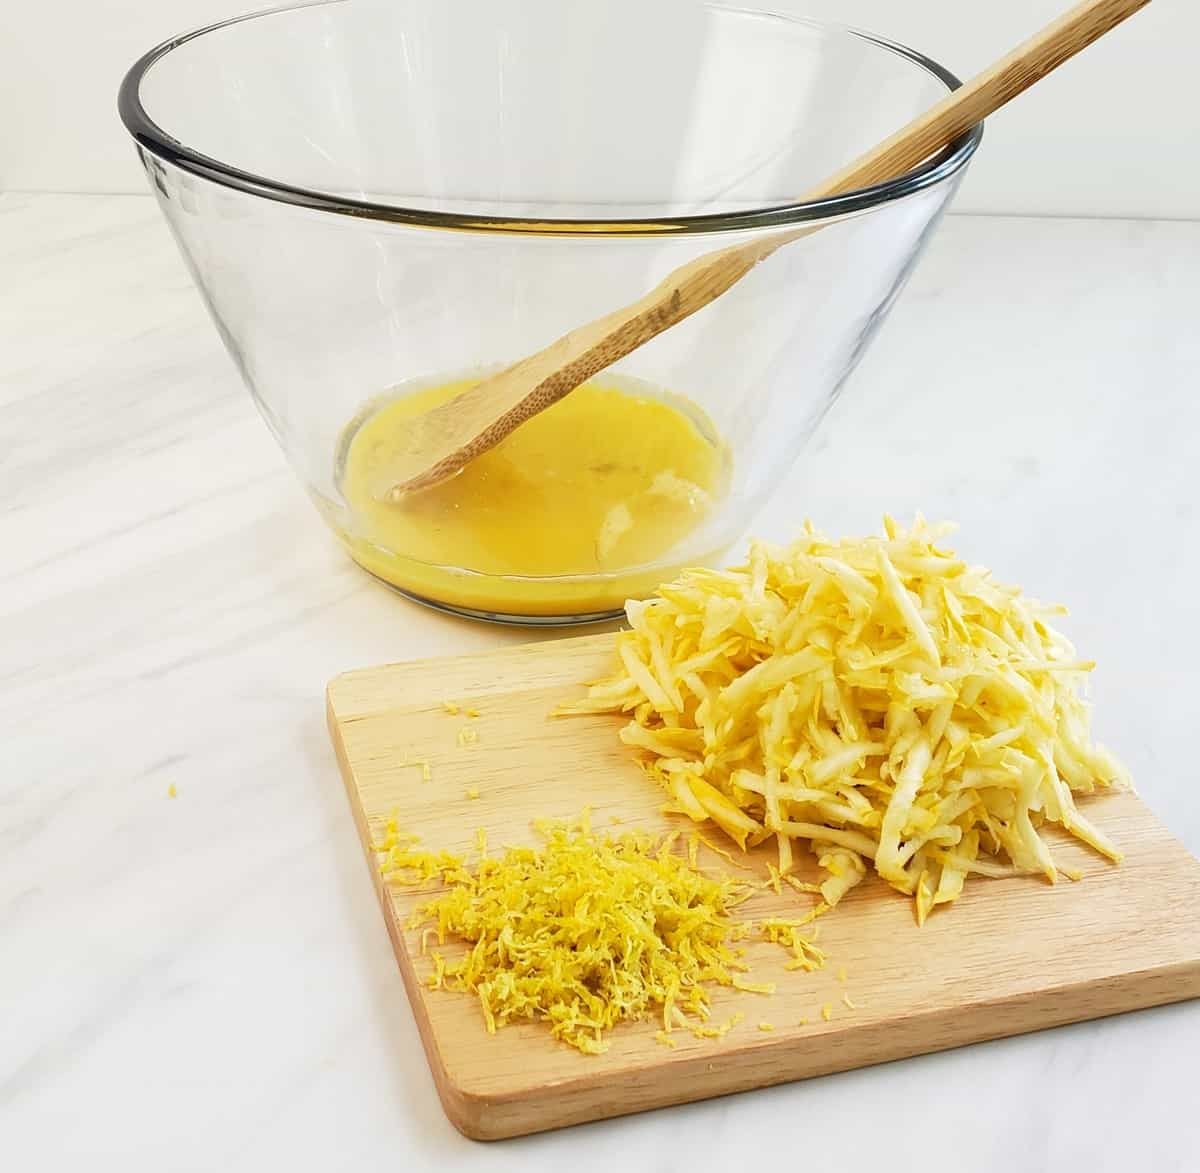 Beaten eggs in glass bowl; shredded yellow squash on wooden cutting board